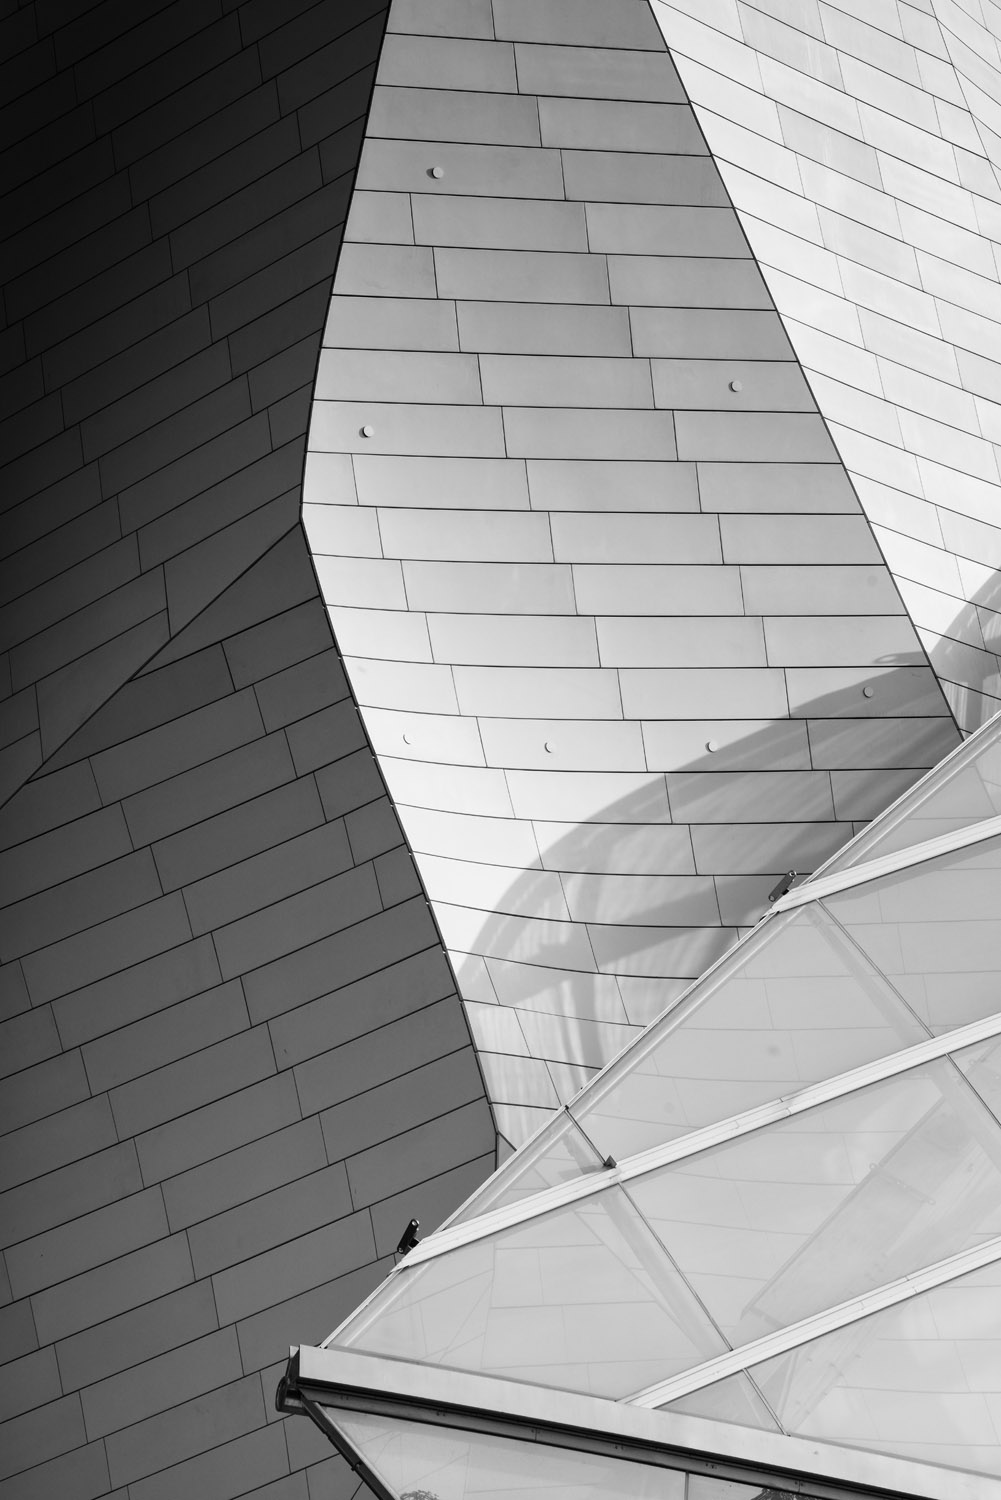 Fondation Louis Vuitton - Photo by Joas Souza